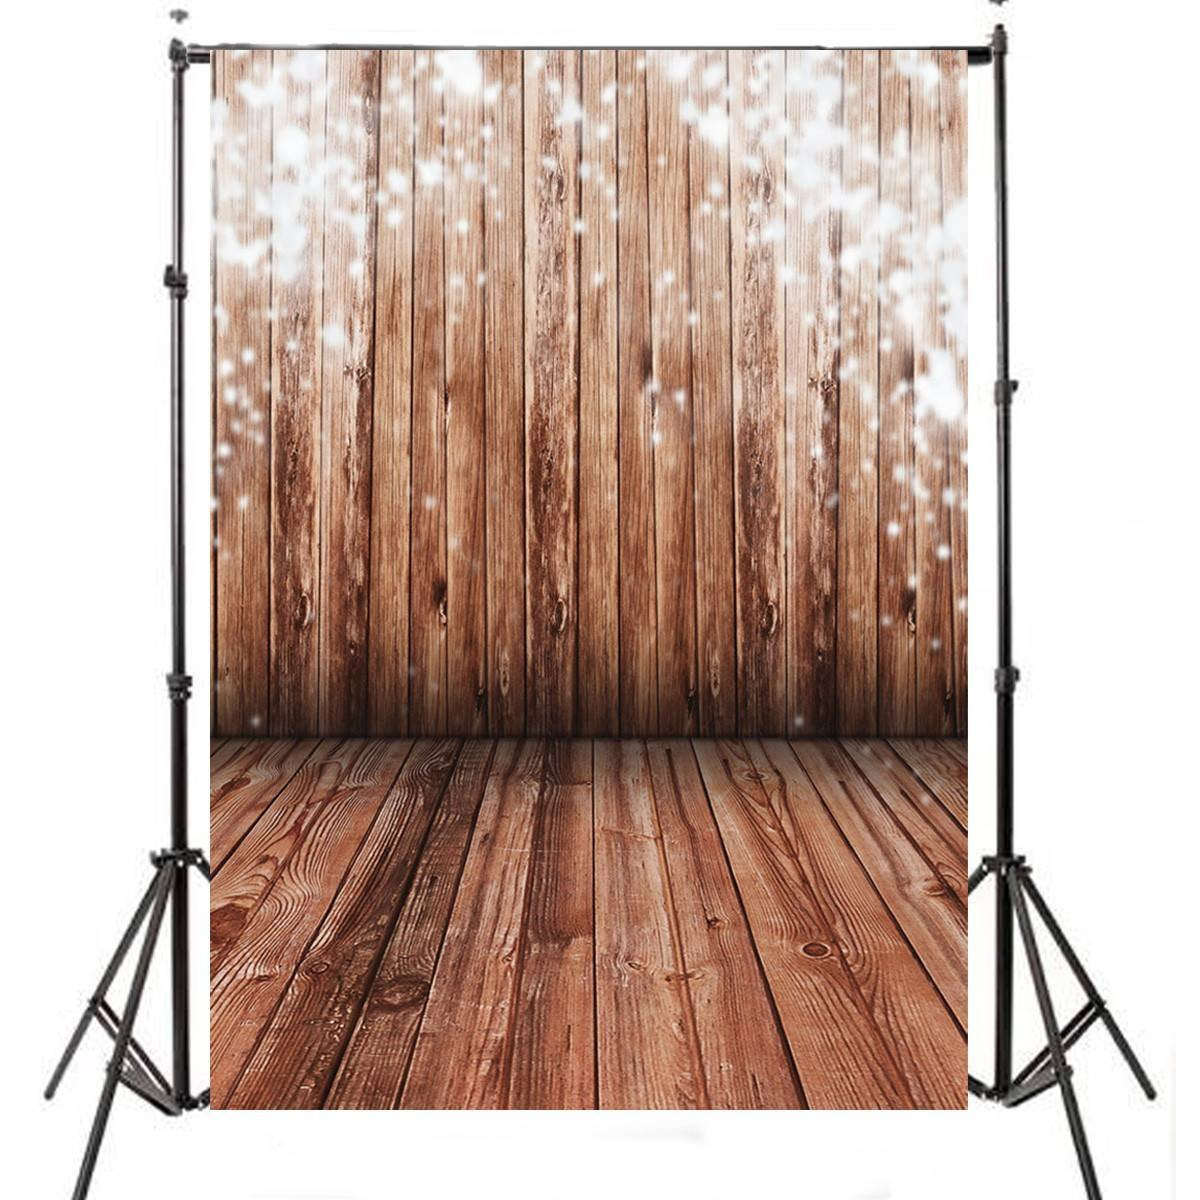 5x7FT Wood Wall Vinyl Photography Backdrop Photo Background Studio Props High Quality New Best Price mehofoto photography backdrops wood pirates ship caribbean party backdrop children photo background studio props vinyl s 2661